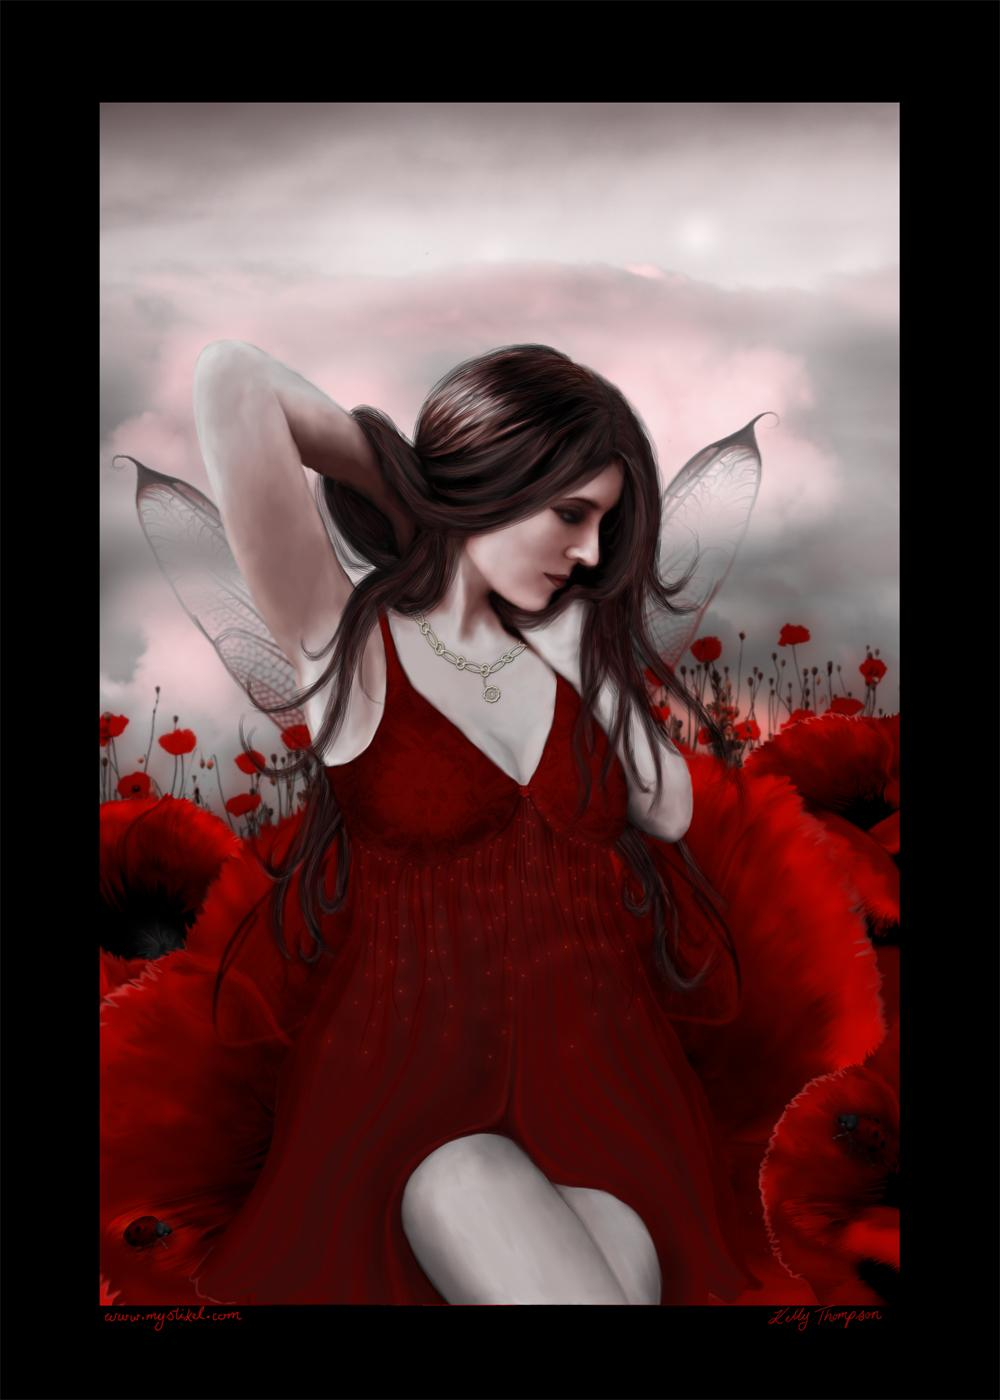 In a Field of Poppies